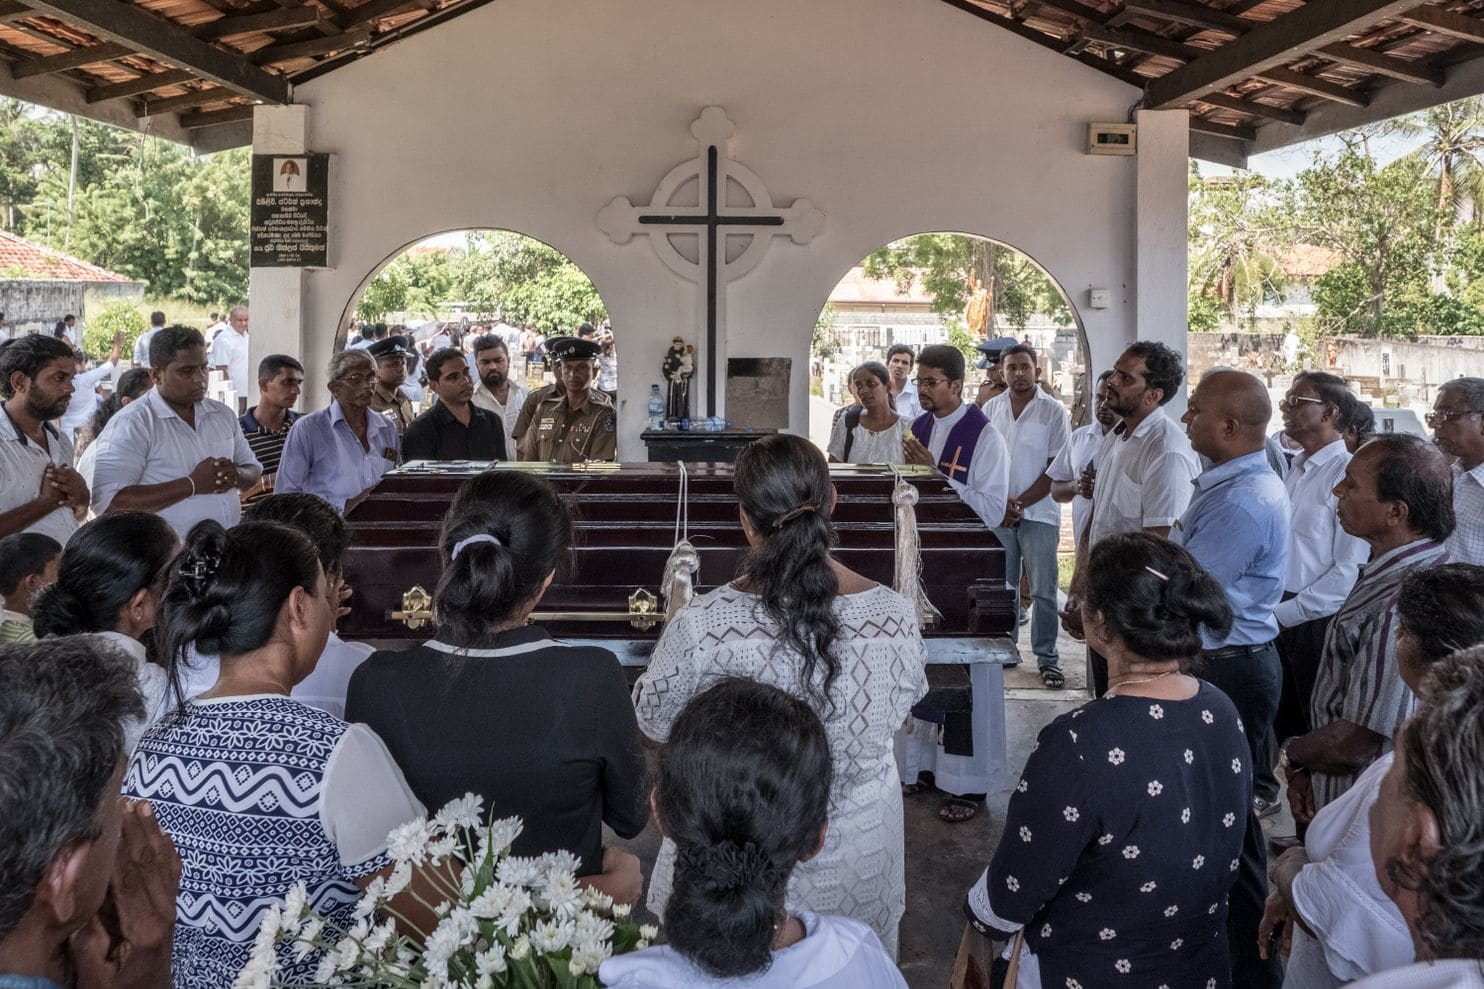 Easter Attacks in Sri Lanka Claimed by ISIS